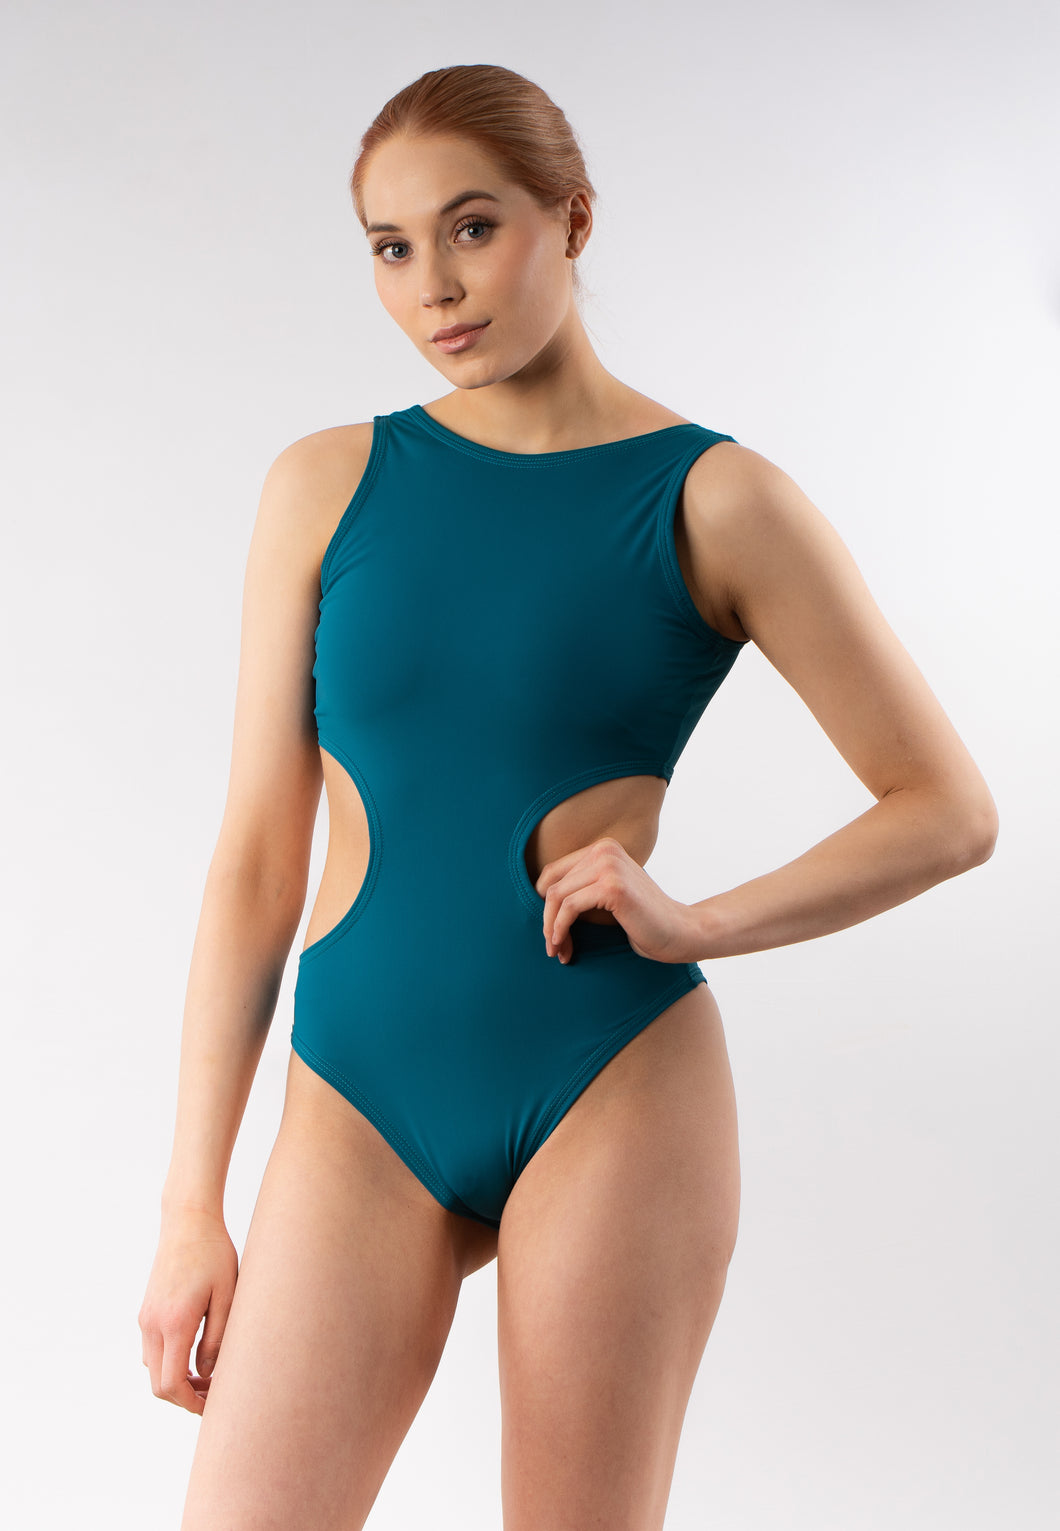 Luna Sporty Swimsuit for Women - Turquoise